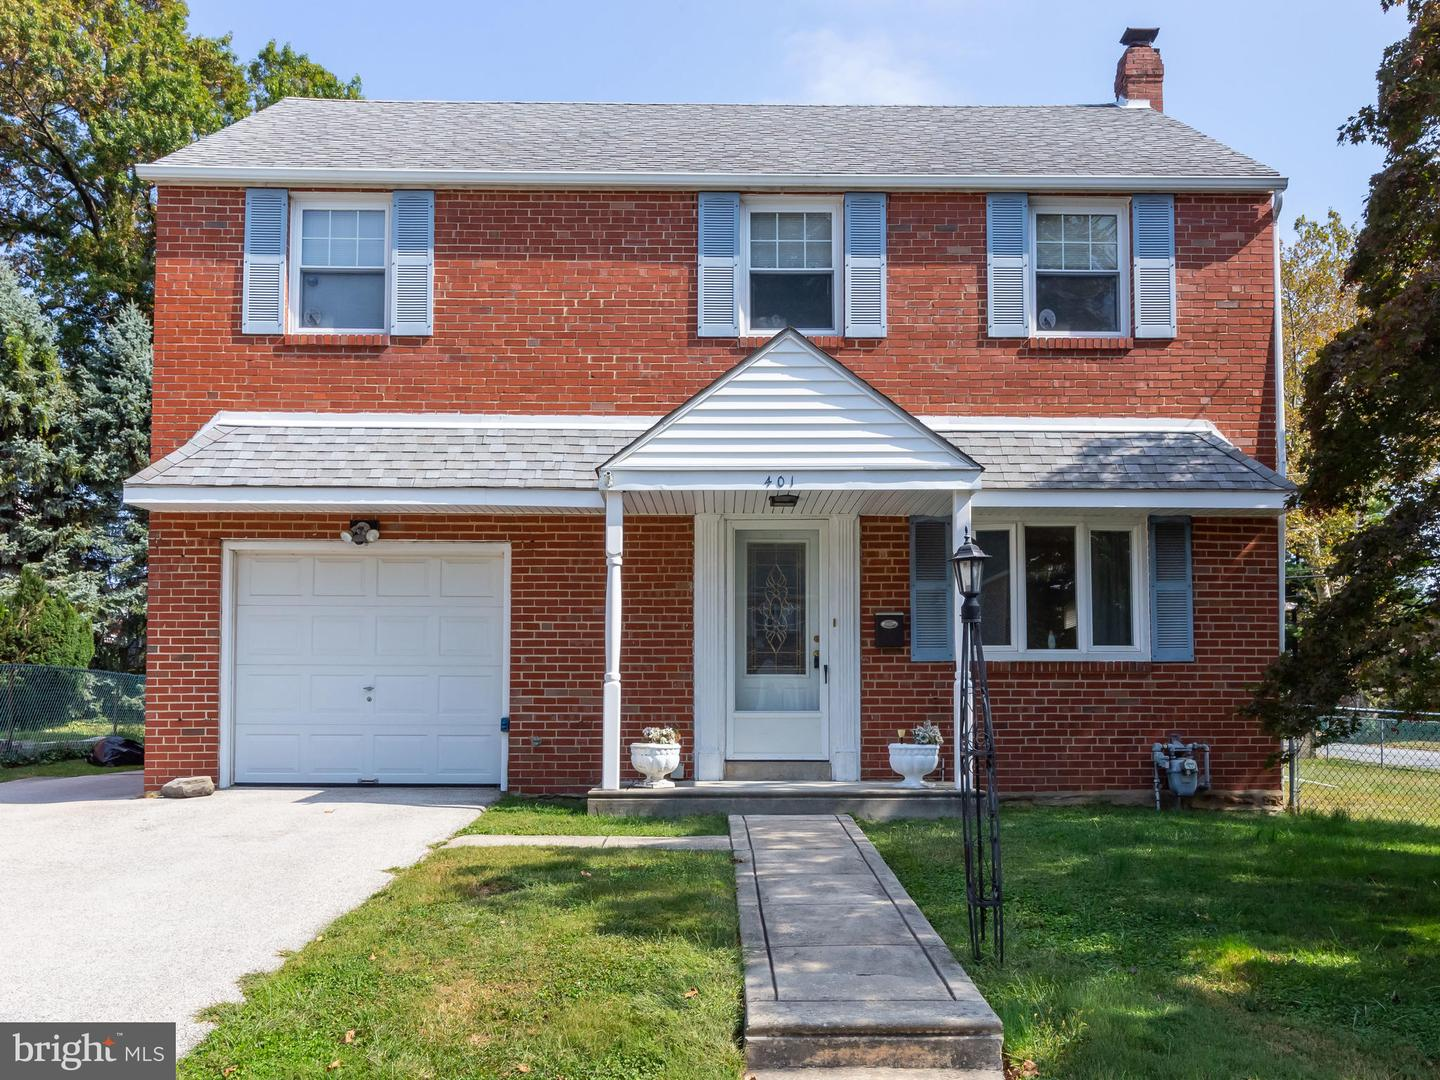 401 Bryan Street Havertown, PA 19083